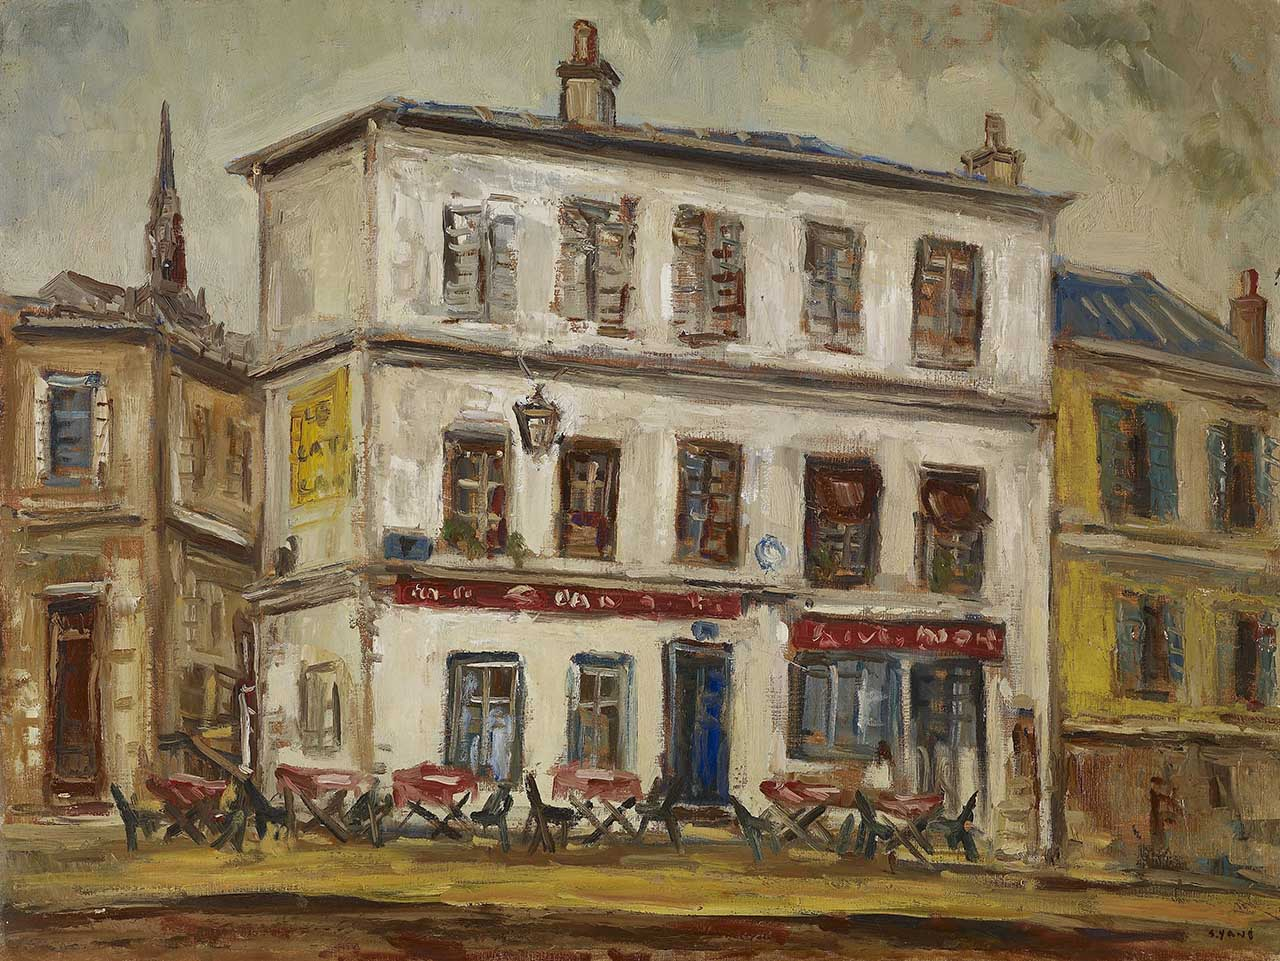 Café in France Oil on canvas 61x80 cm